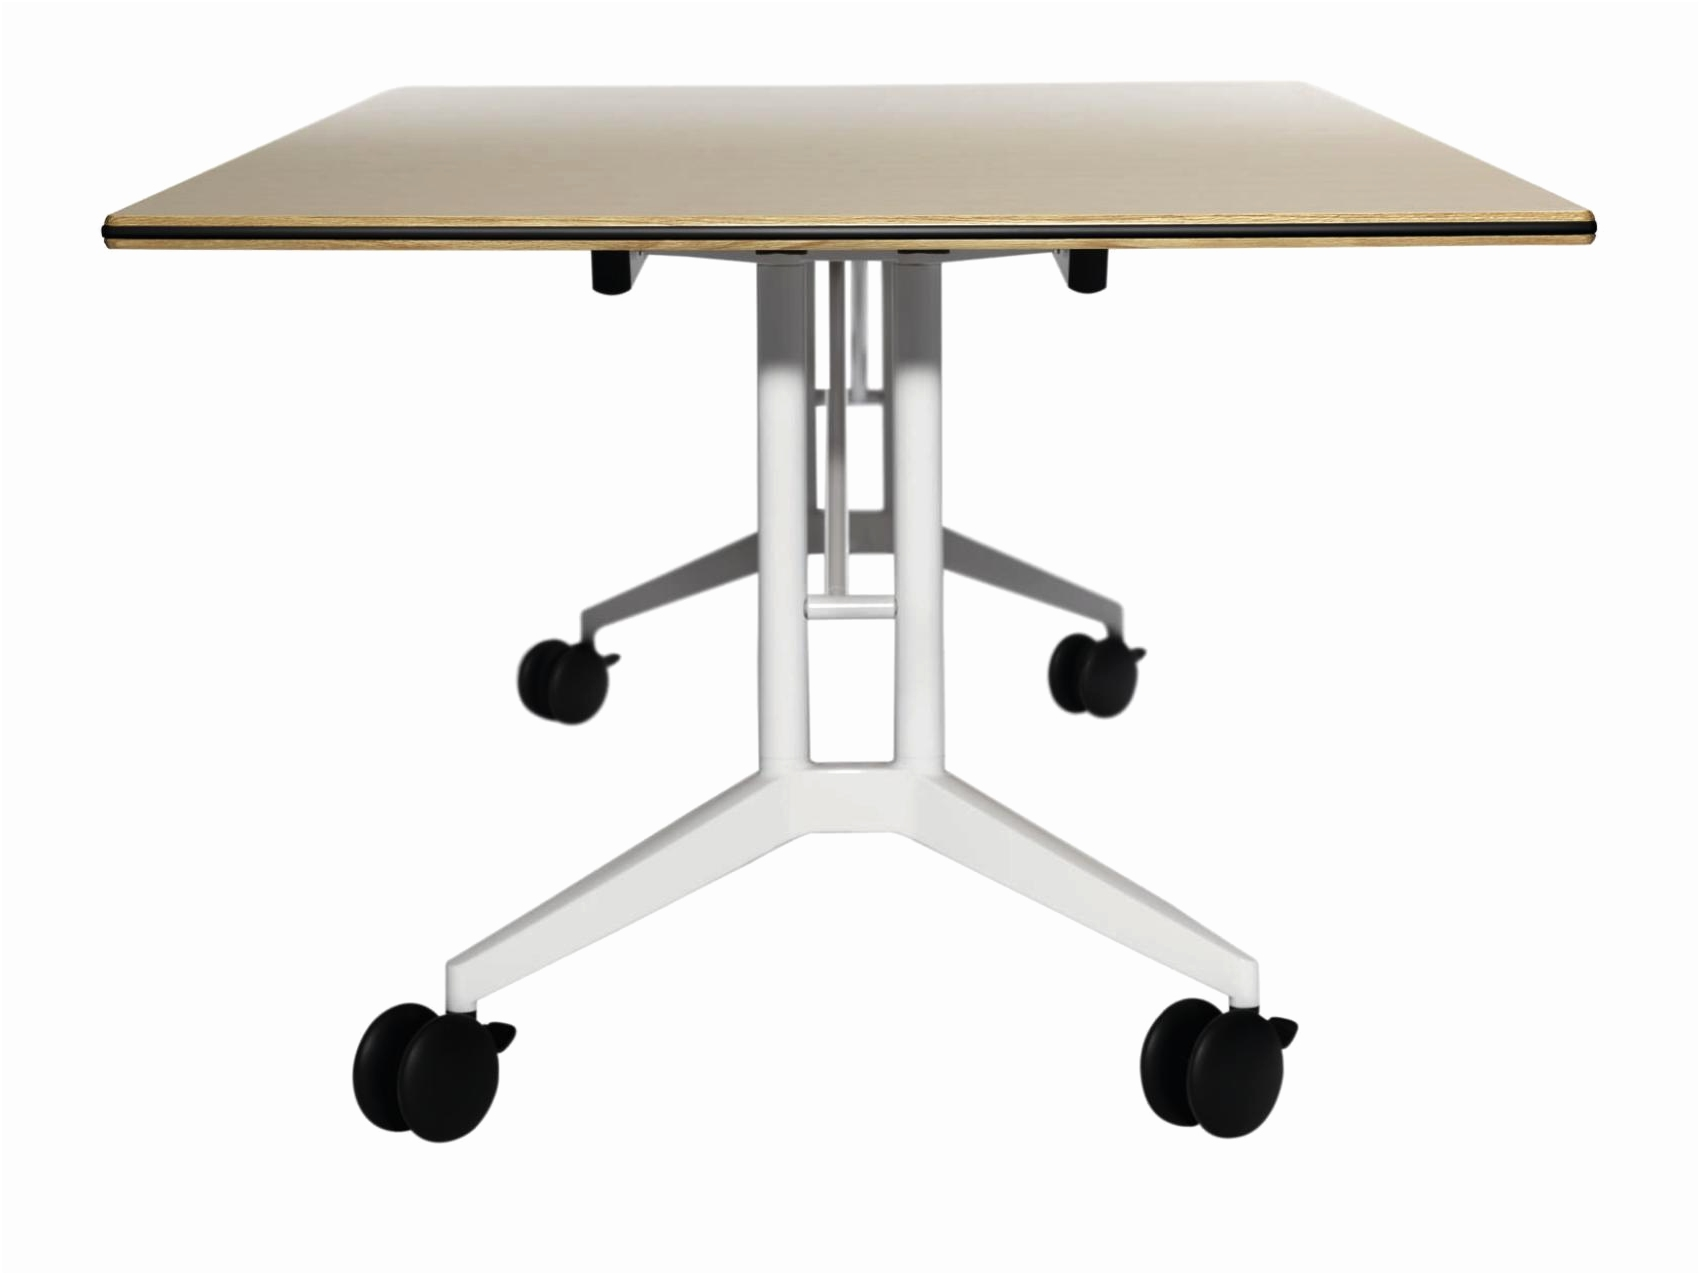 Costco Folding Tables | Collapsible Folding Table | Costco Round Folding Tables